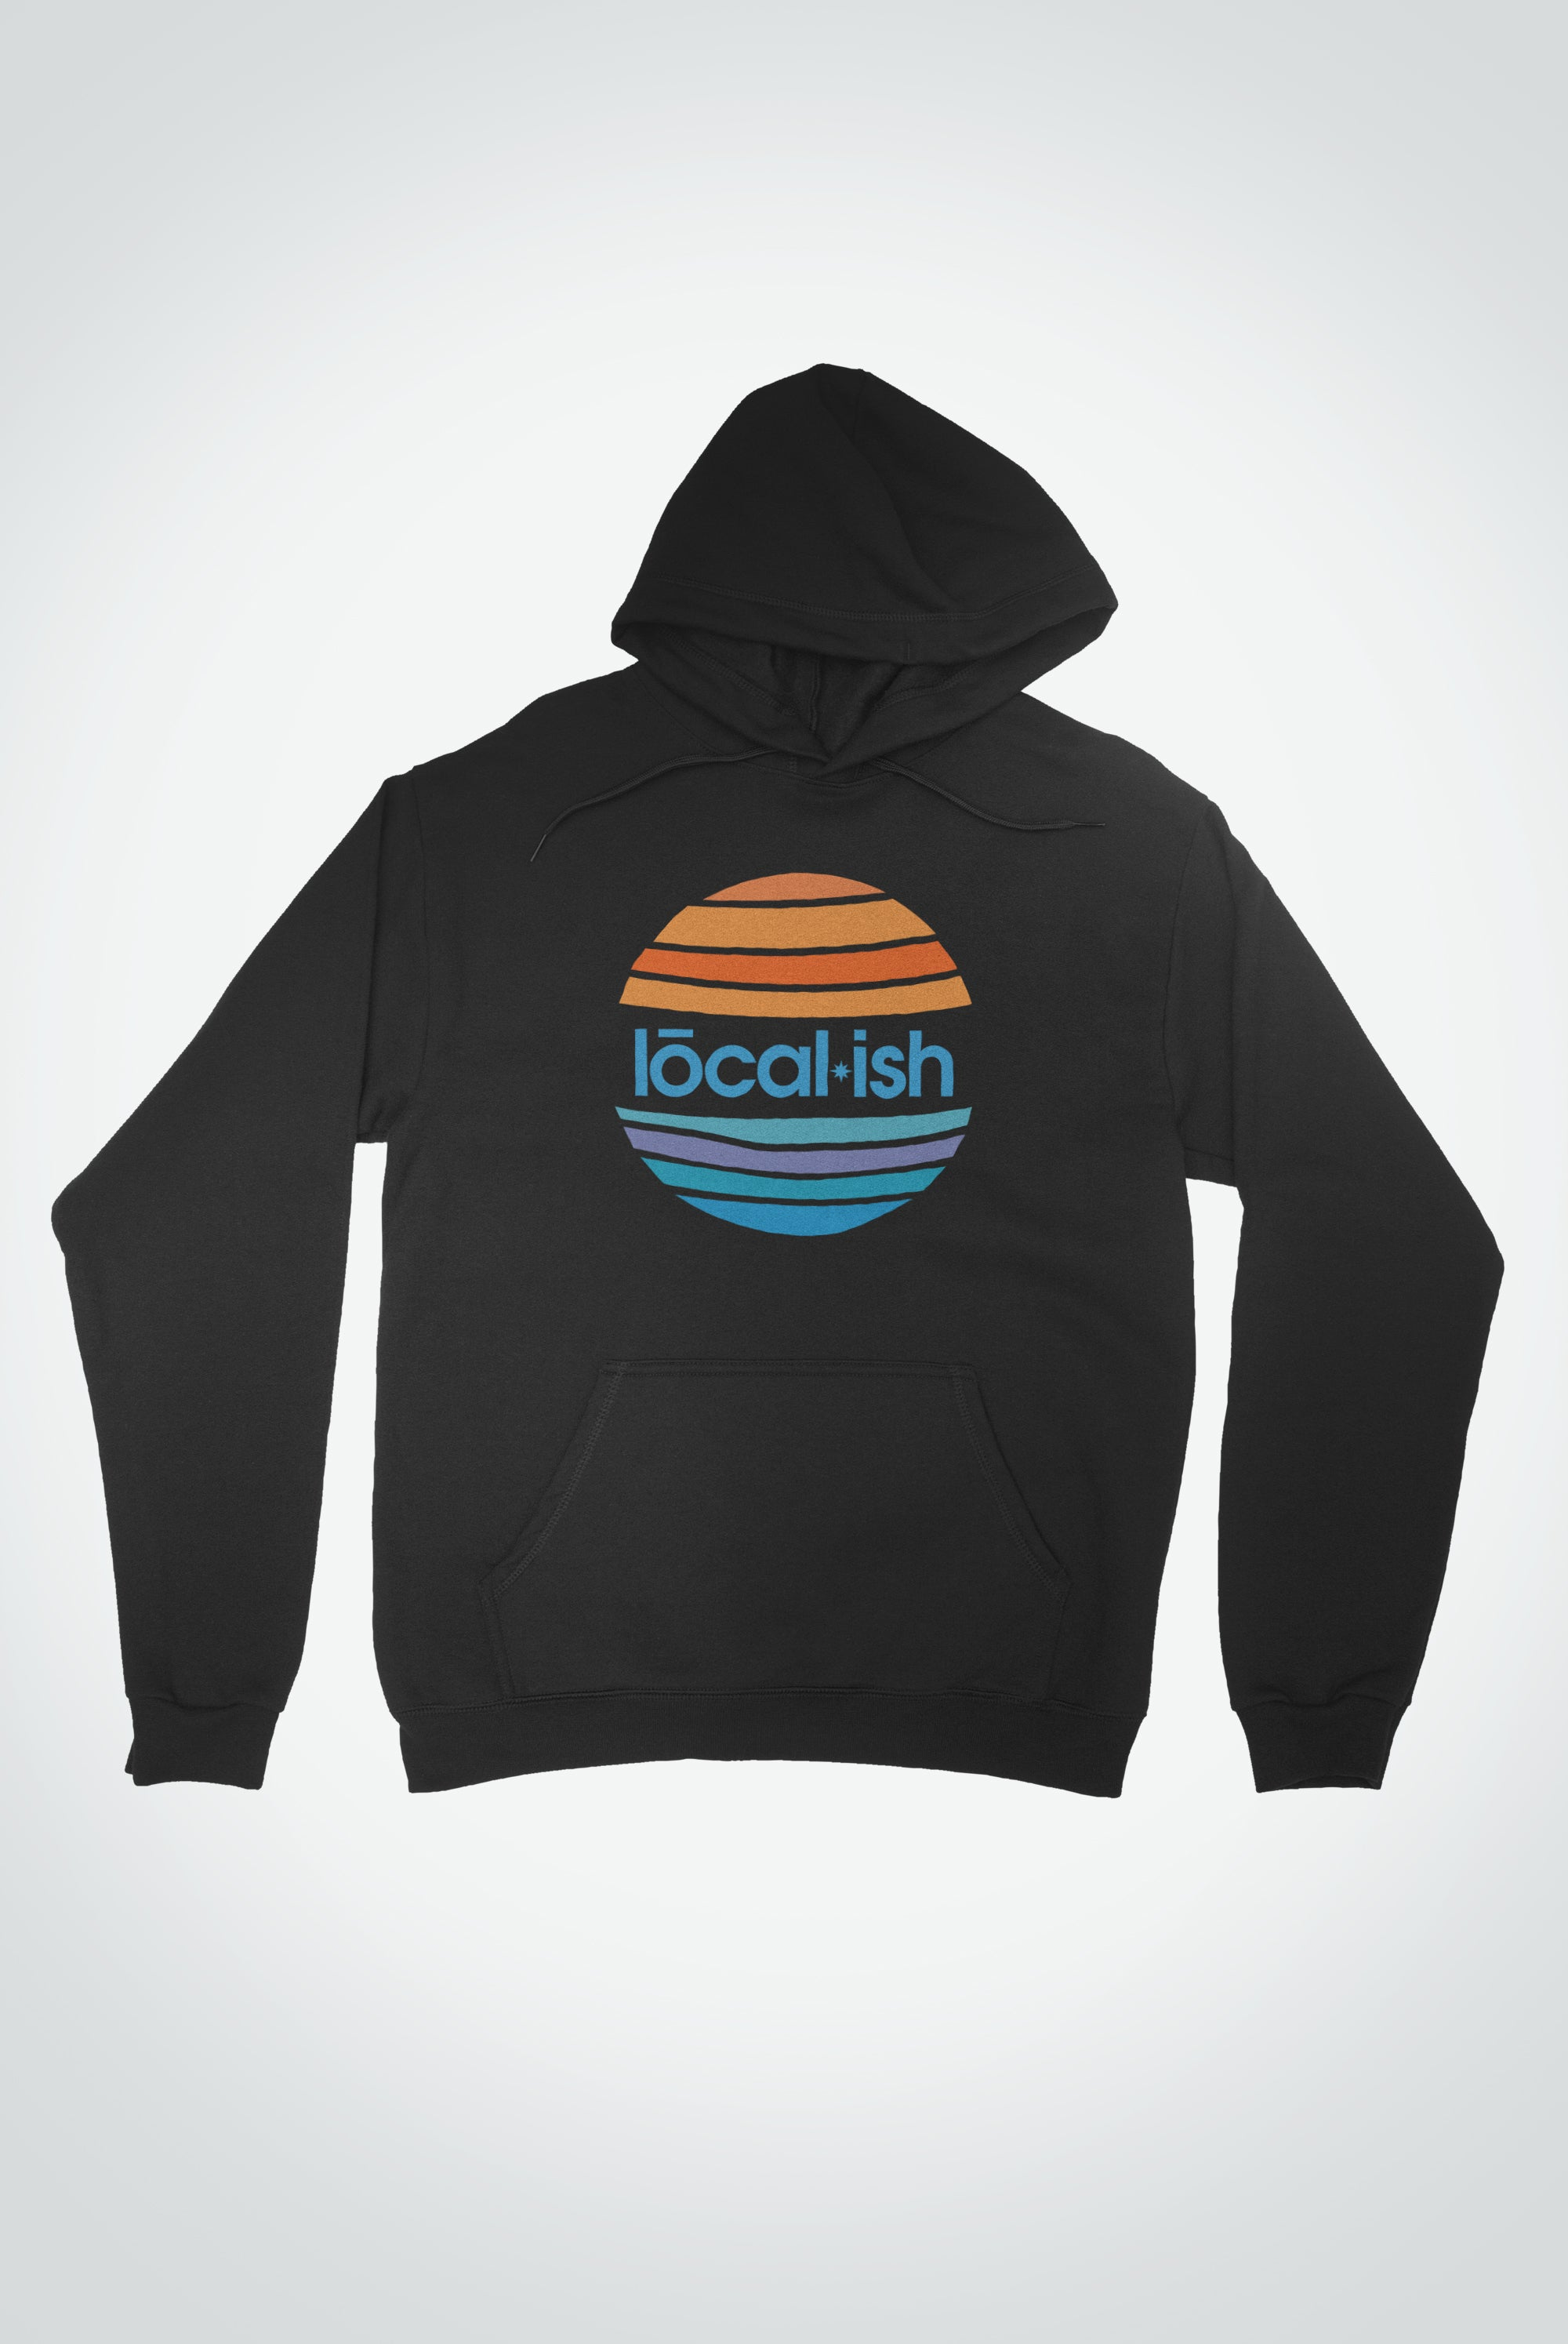 the global hoodie